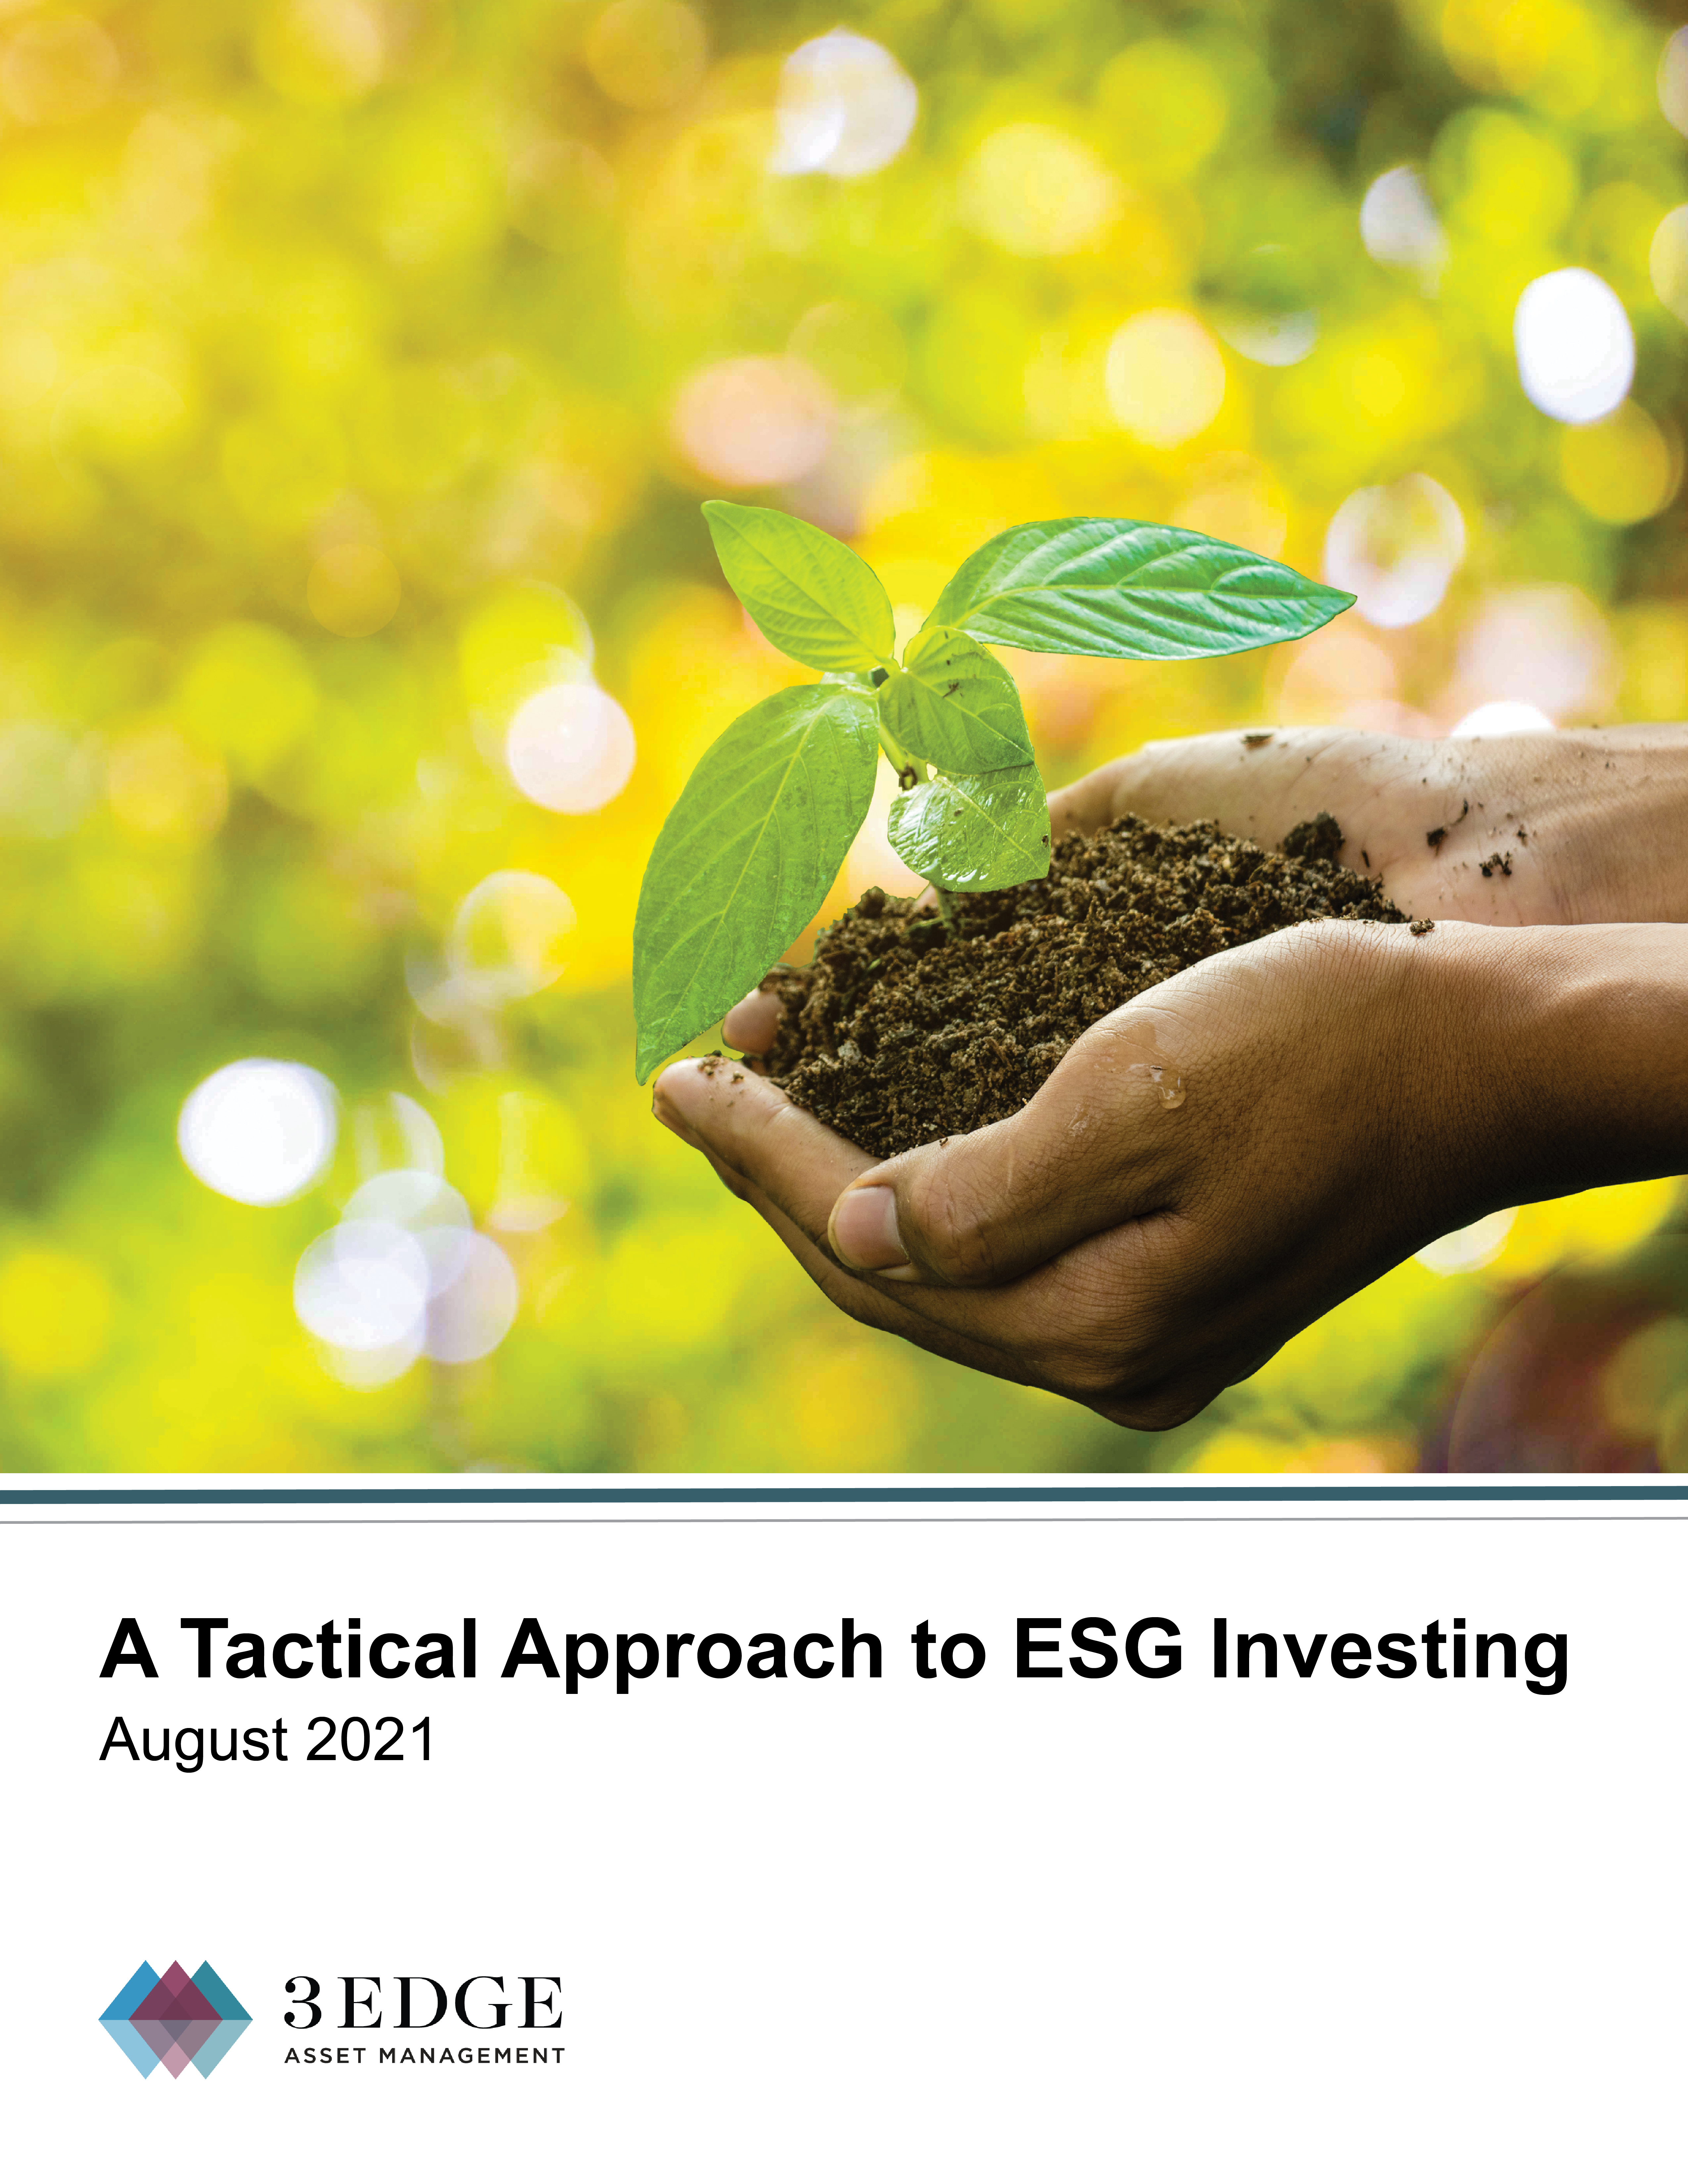 A Tactical Approach to ESG Investing